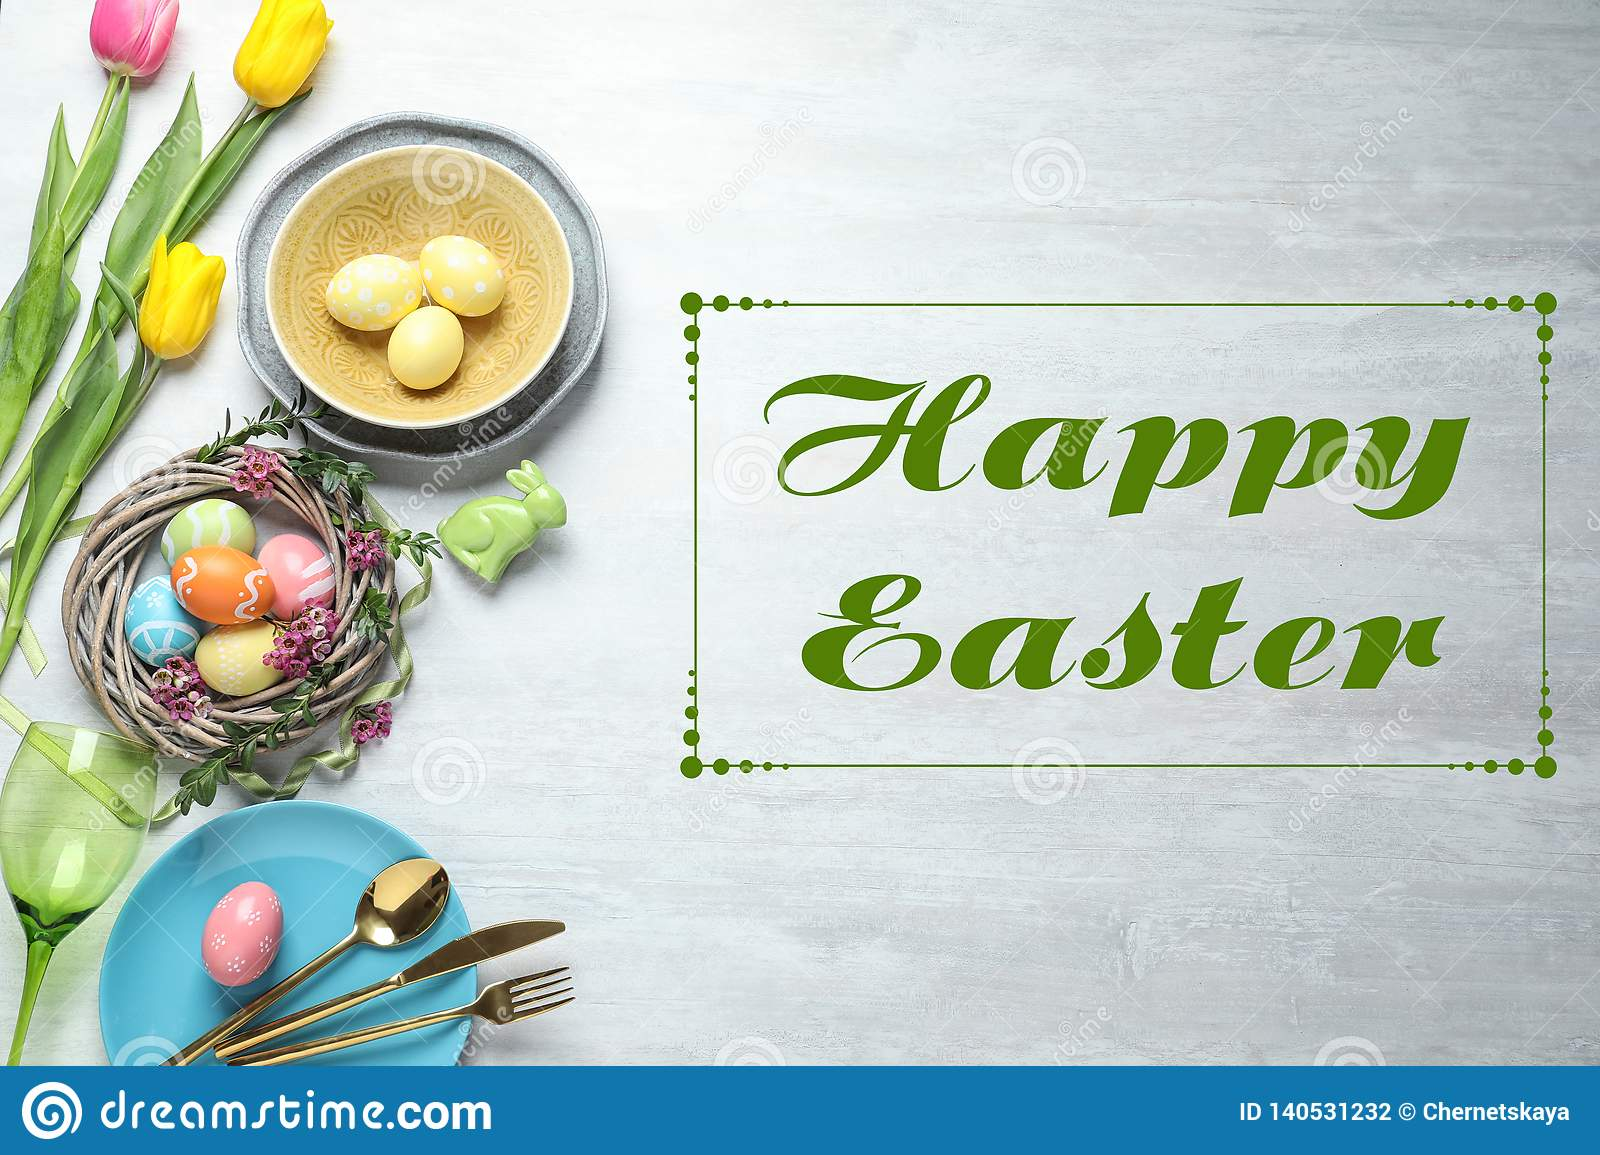 Festive table setting and text Happy Easter on wooden background